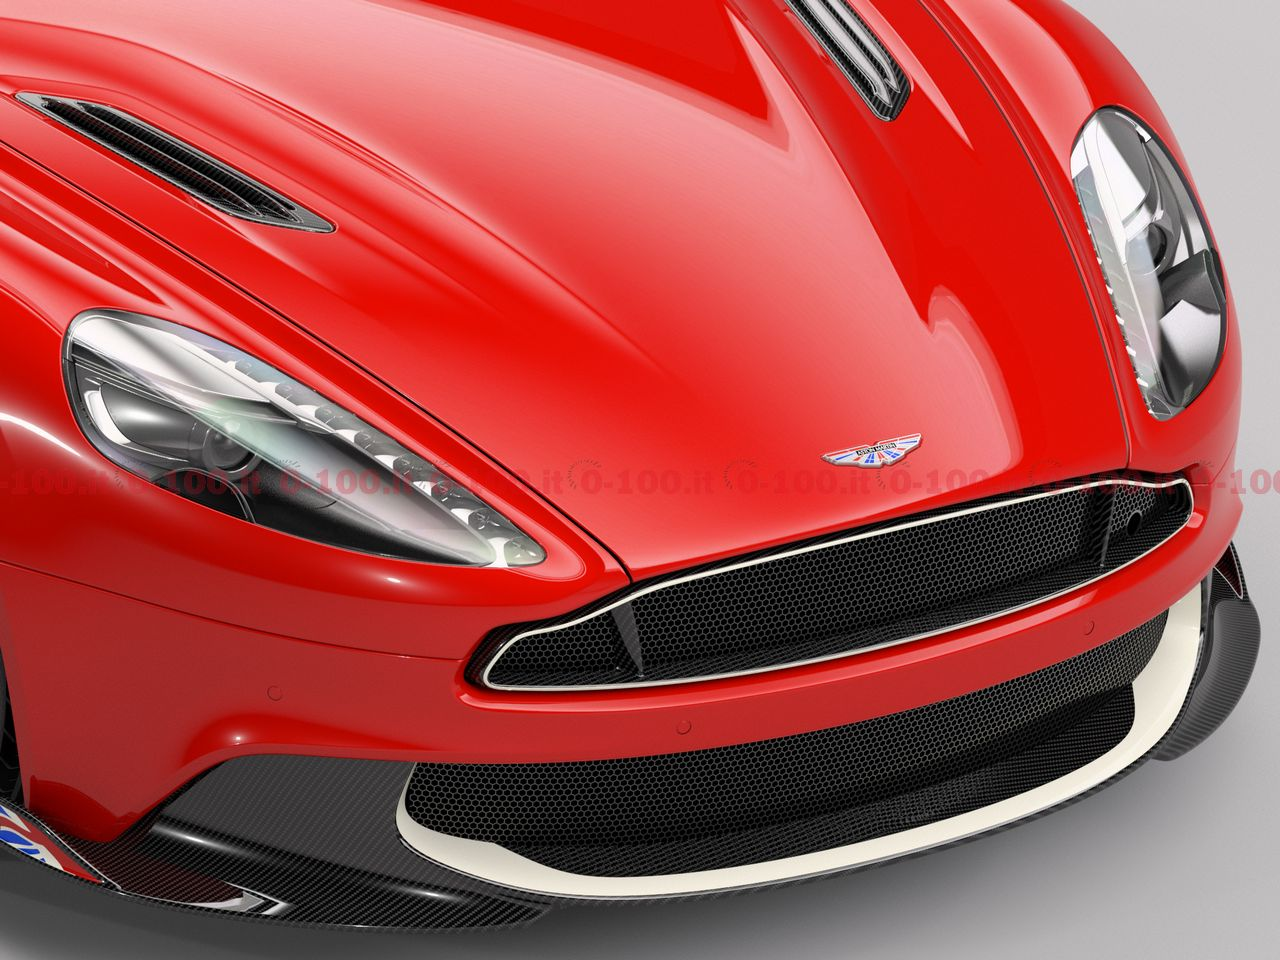 q-by-aston-martin-vanquish-red-arrow-edition_0-100_13